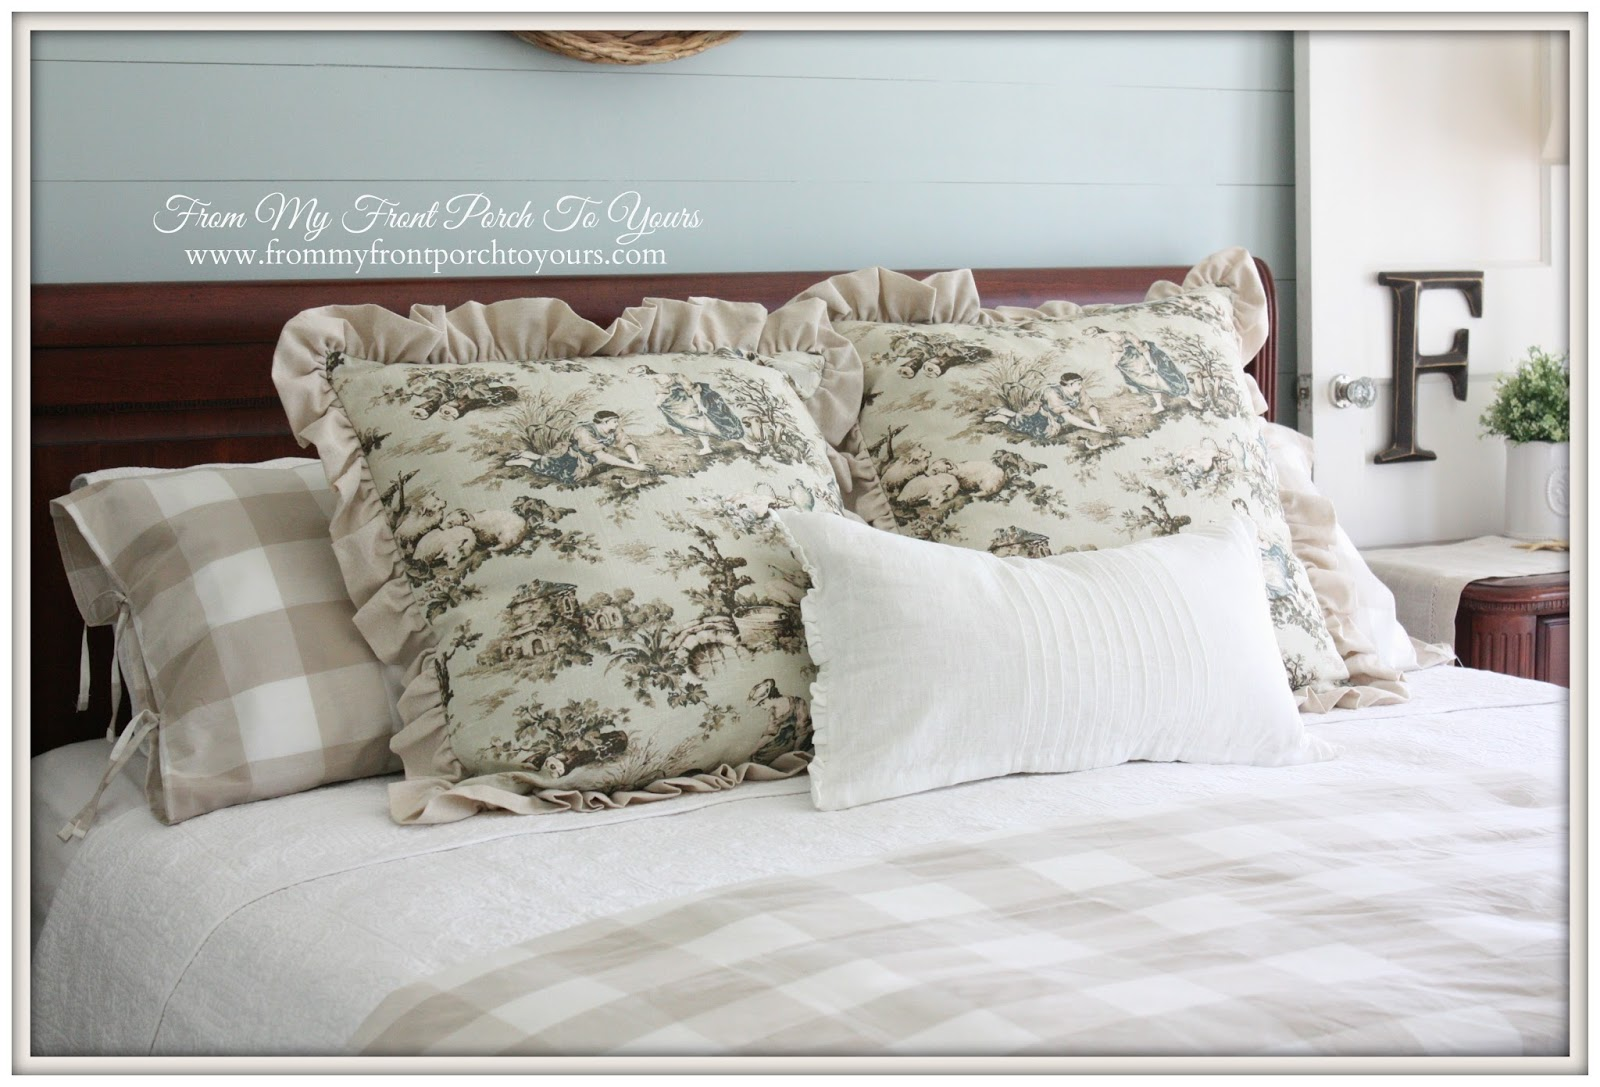 From My Front Porch To Yours- Toile Shams and Bedding